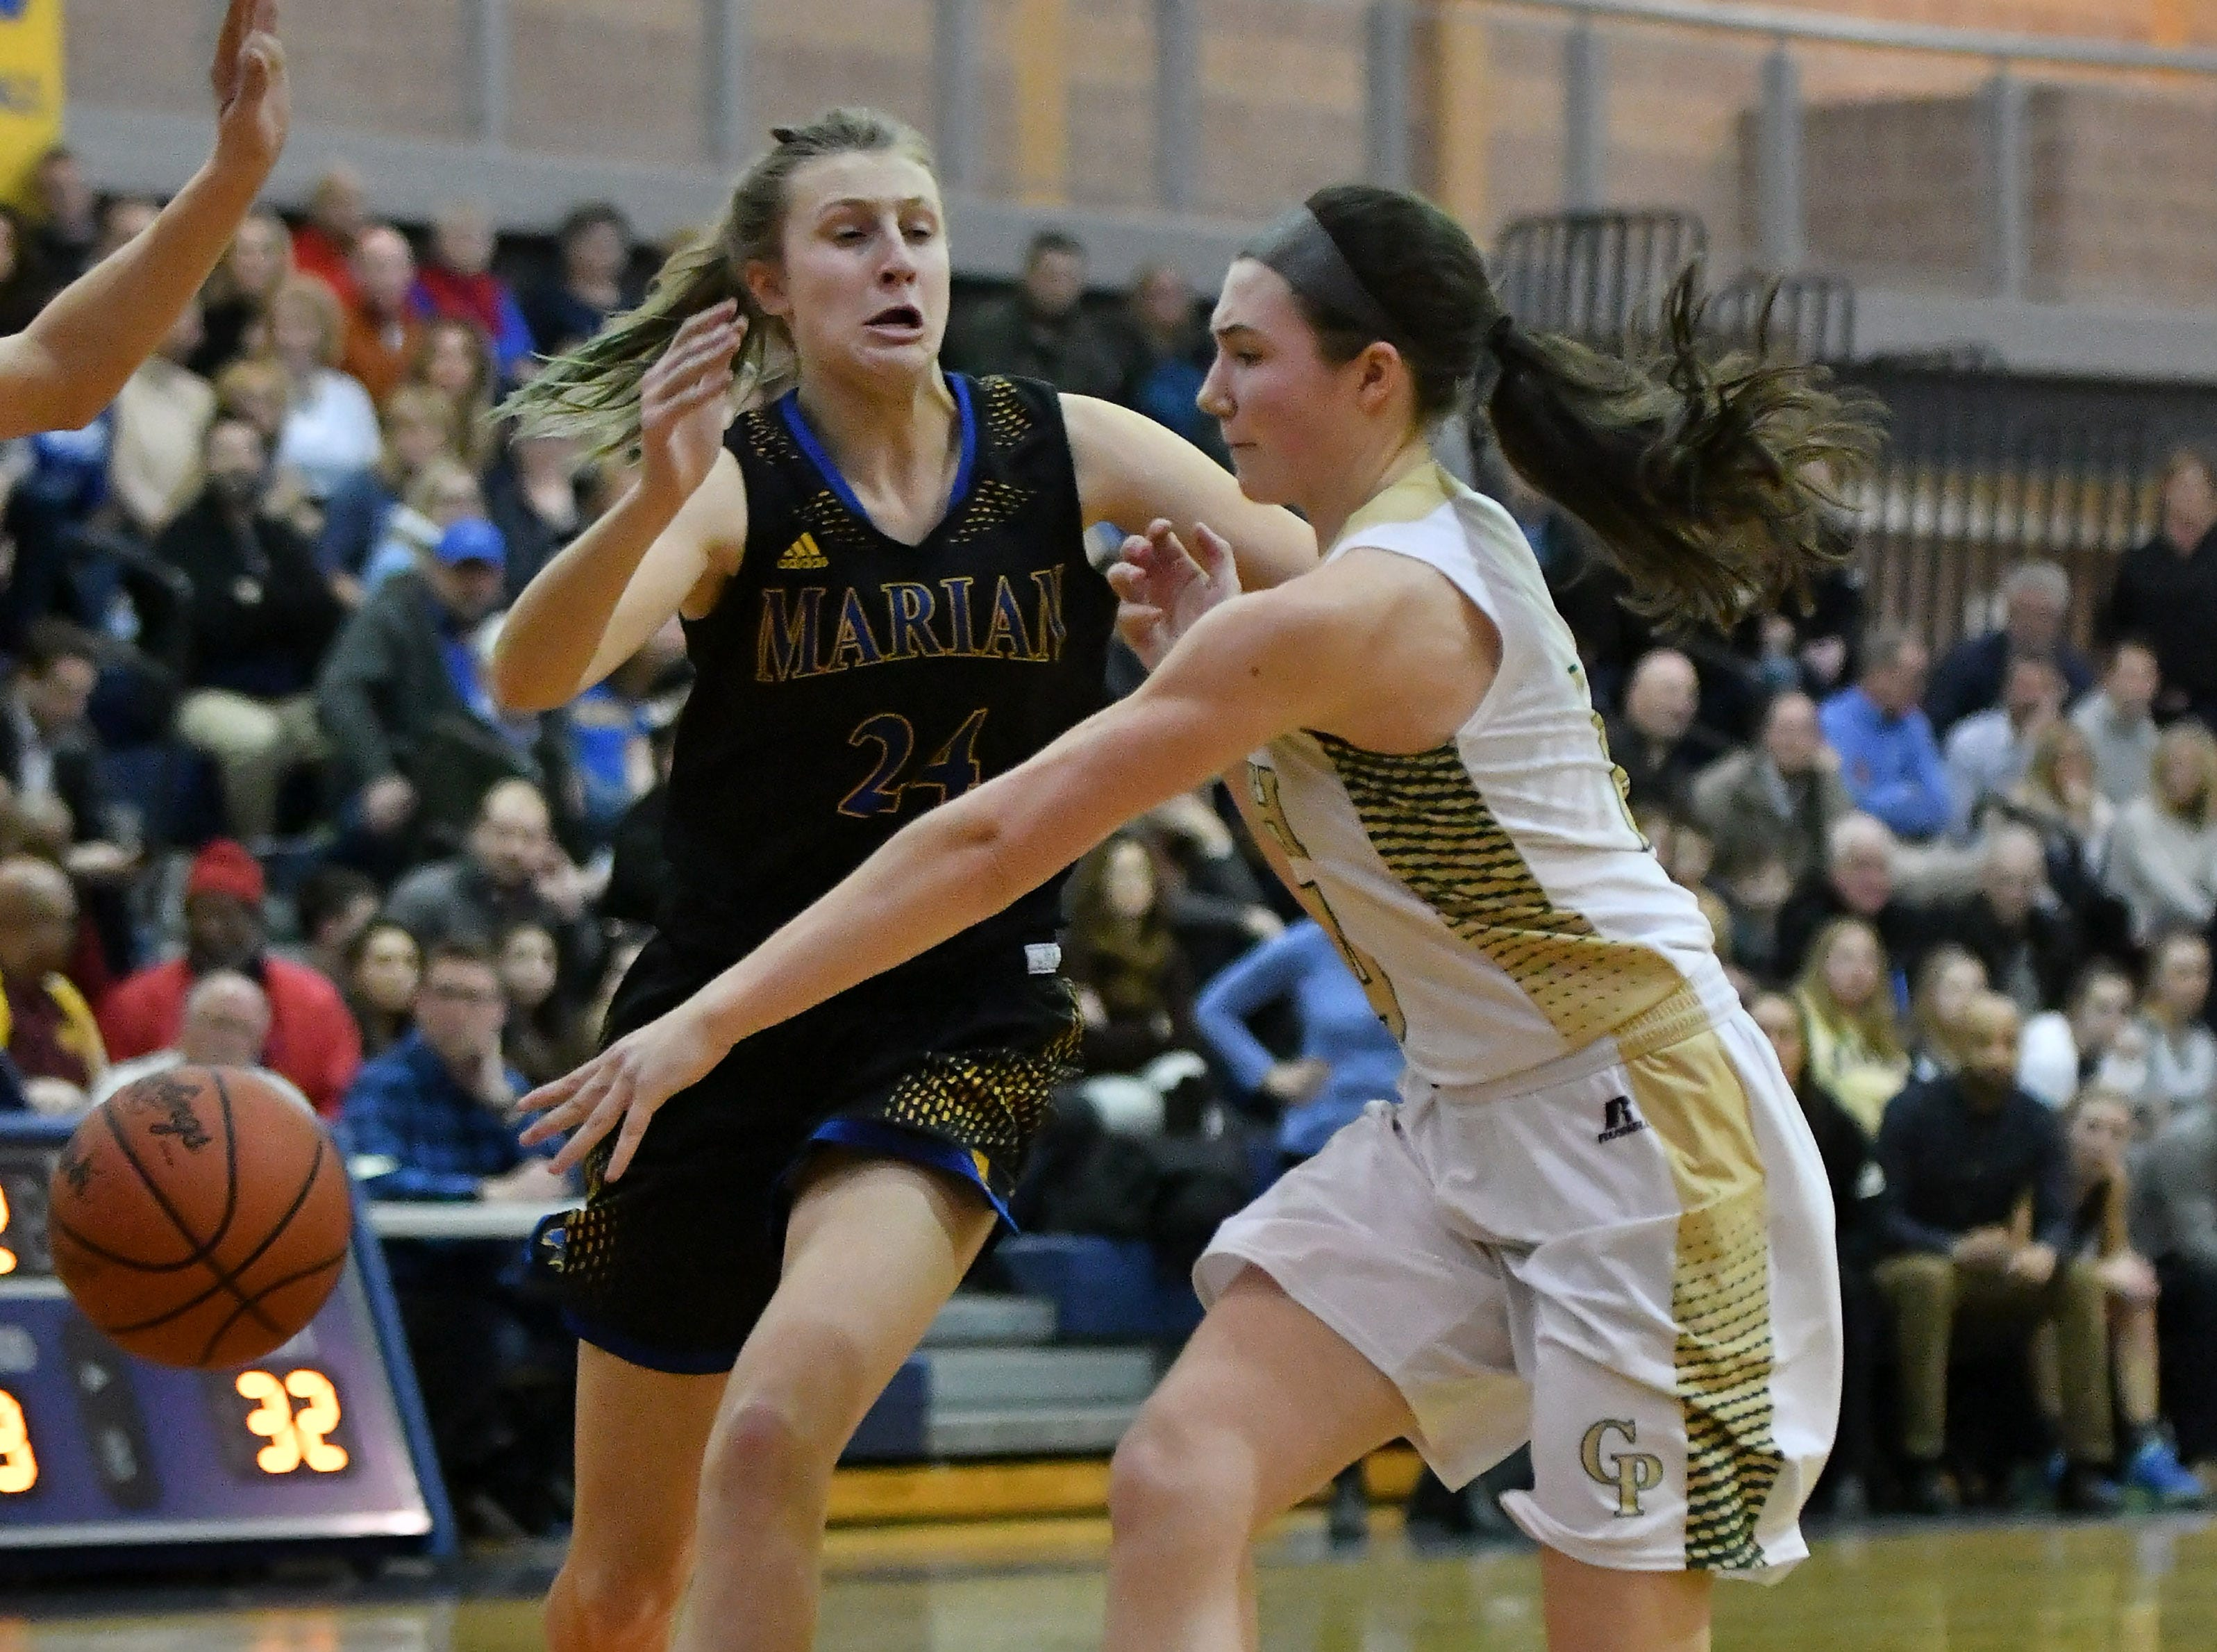 Grosse Pointe North's Maddie Kohler passes the ball past Marian's Shannon Kennedy in the second half.